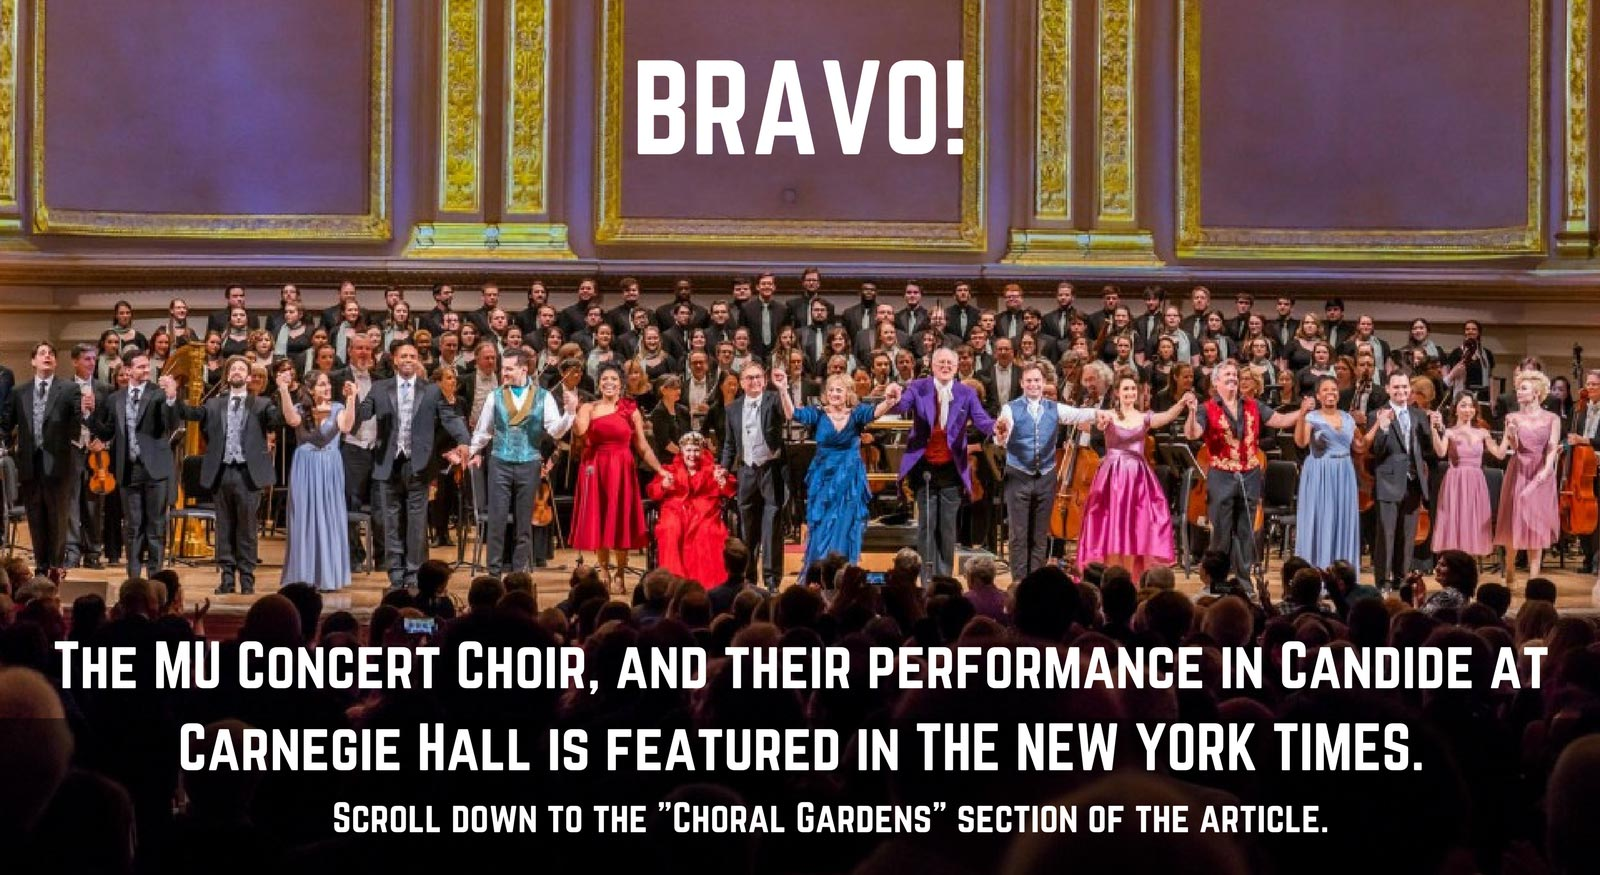 BRAVO! Concert Choir performance featured in New York Times